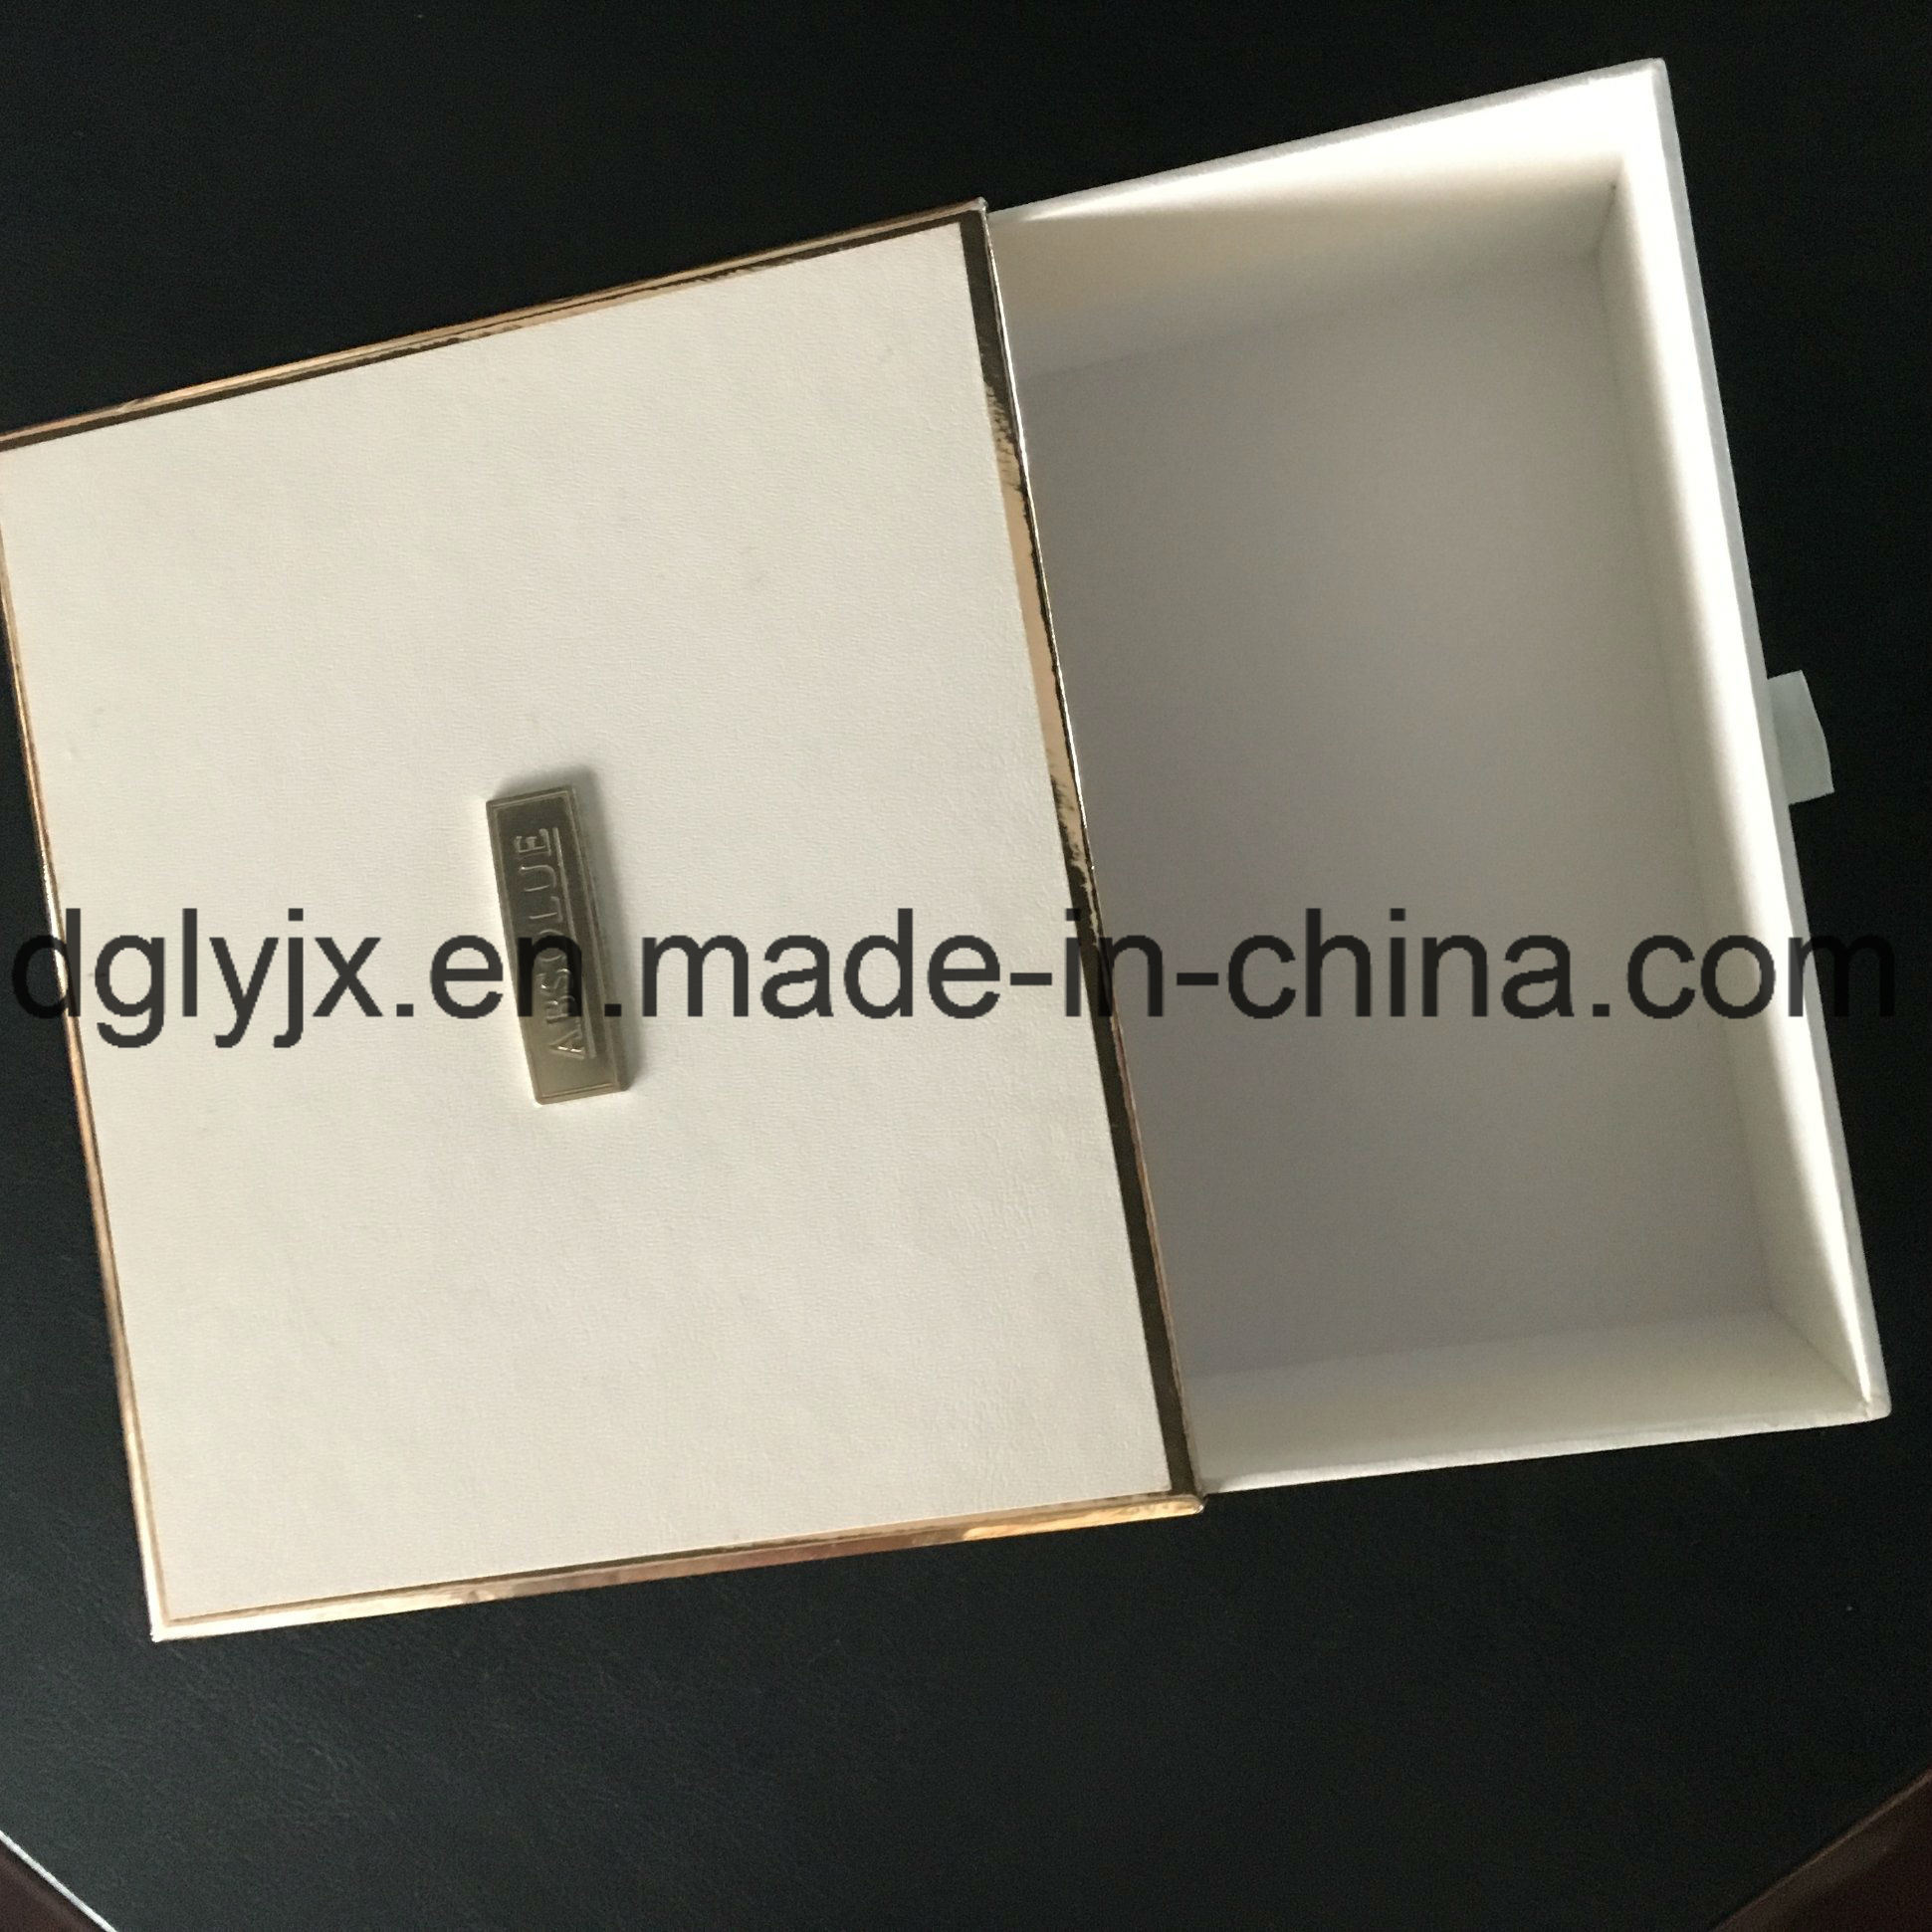 Automatic Packaging, Paper Gift Box, Drawer Box, Gift, Wine, Jewelry, Packing Box Making Machine